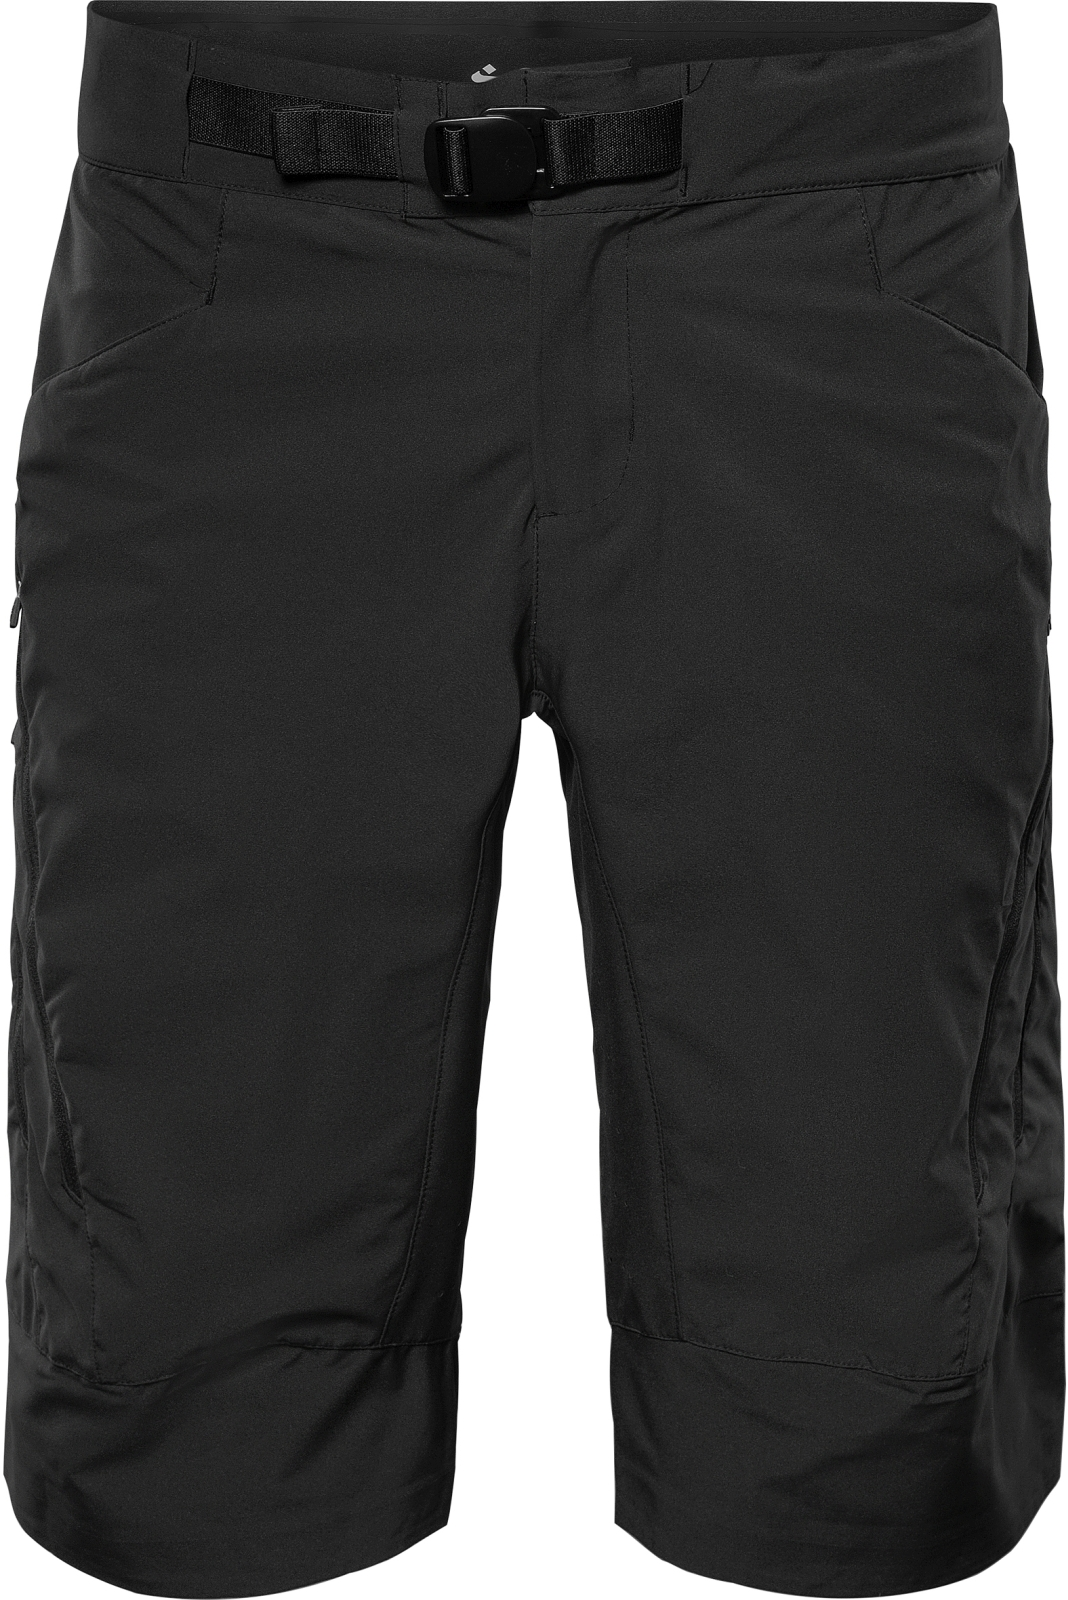 Sweet Protection Hunter Shorts M - black L